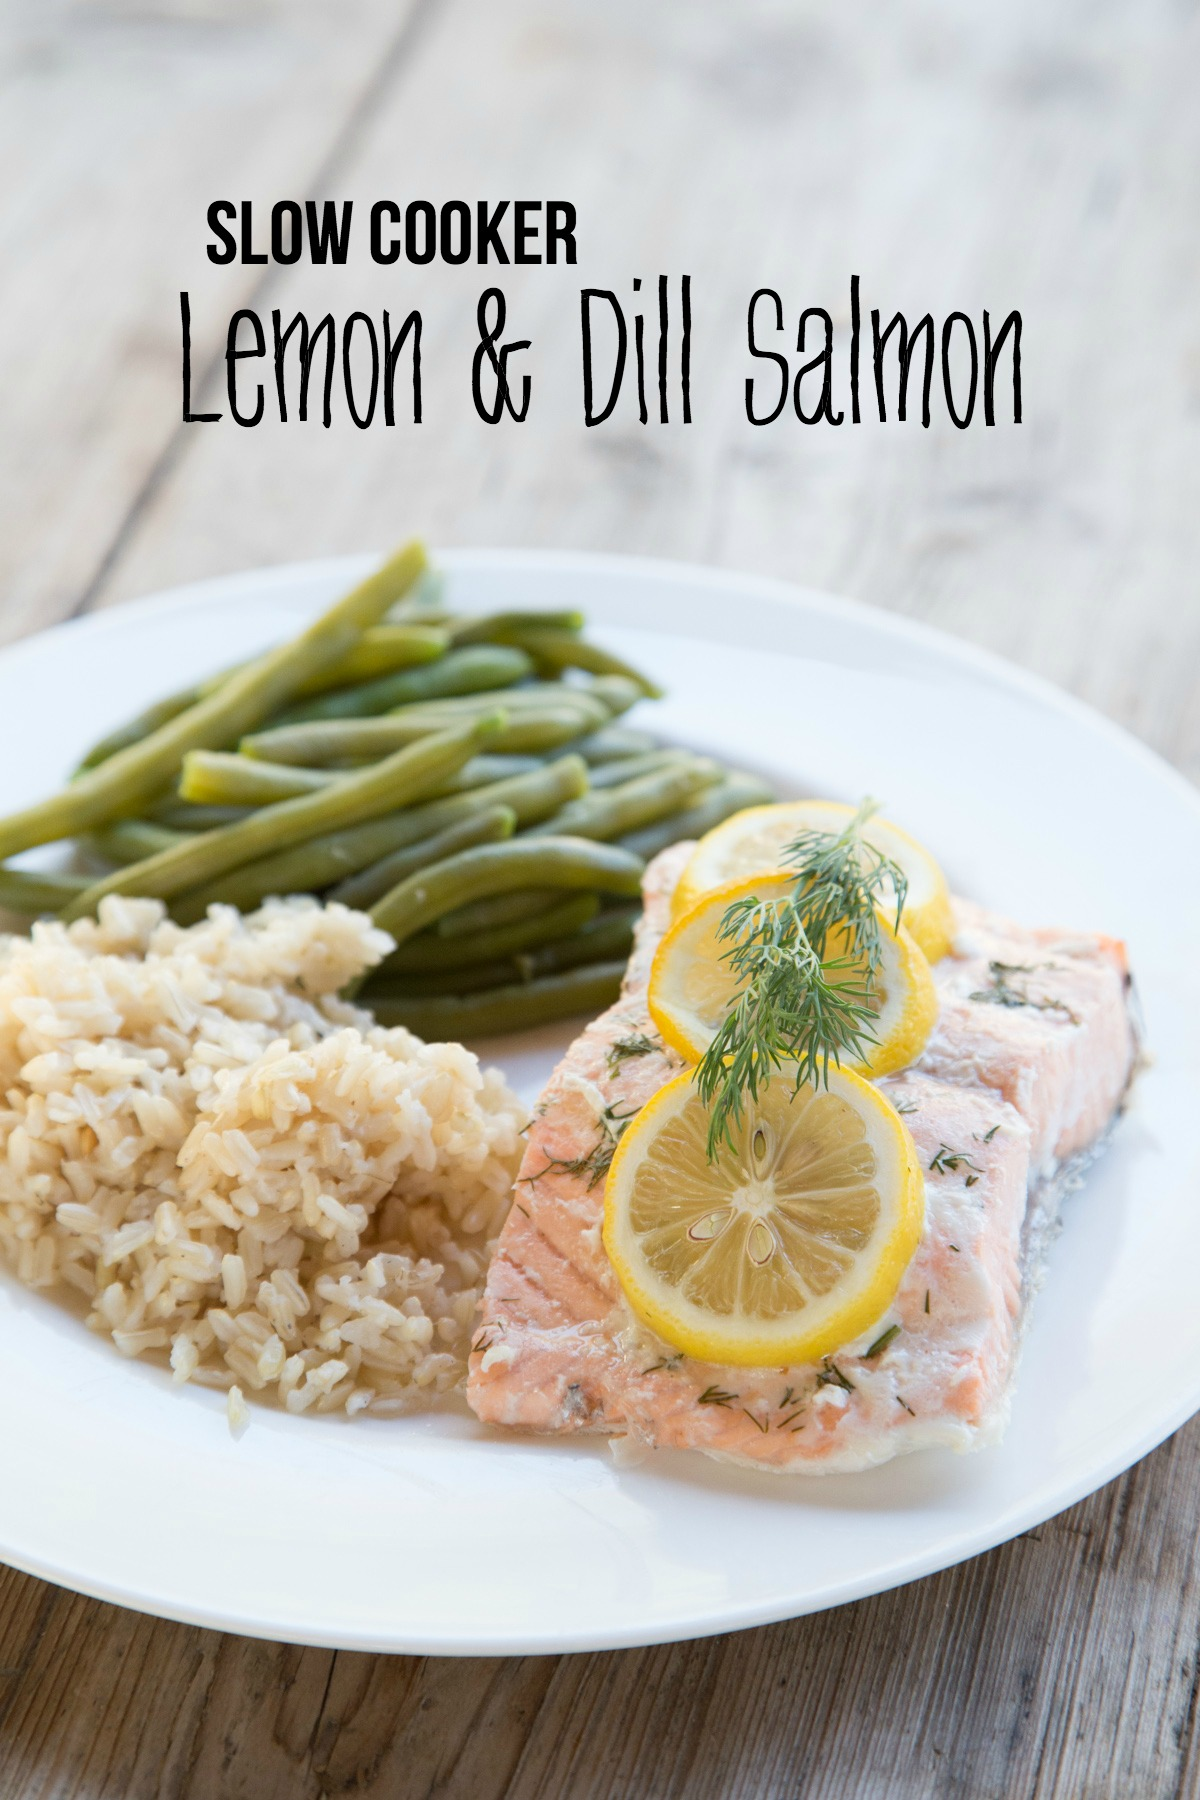 Lemon & Dill Salmon in Slow Cooker 5DollarDinners.com